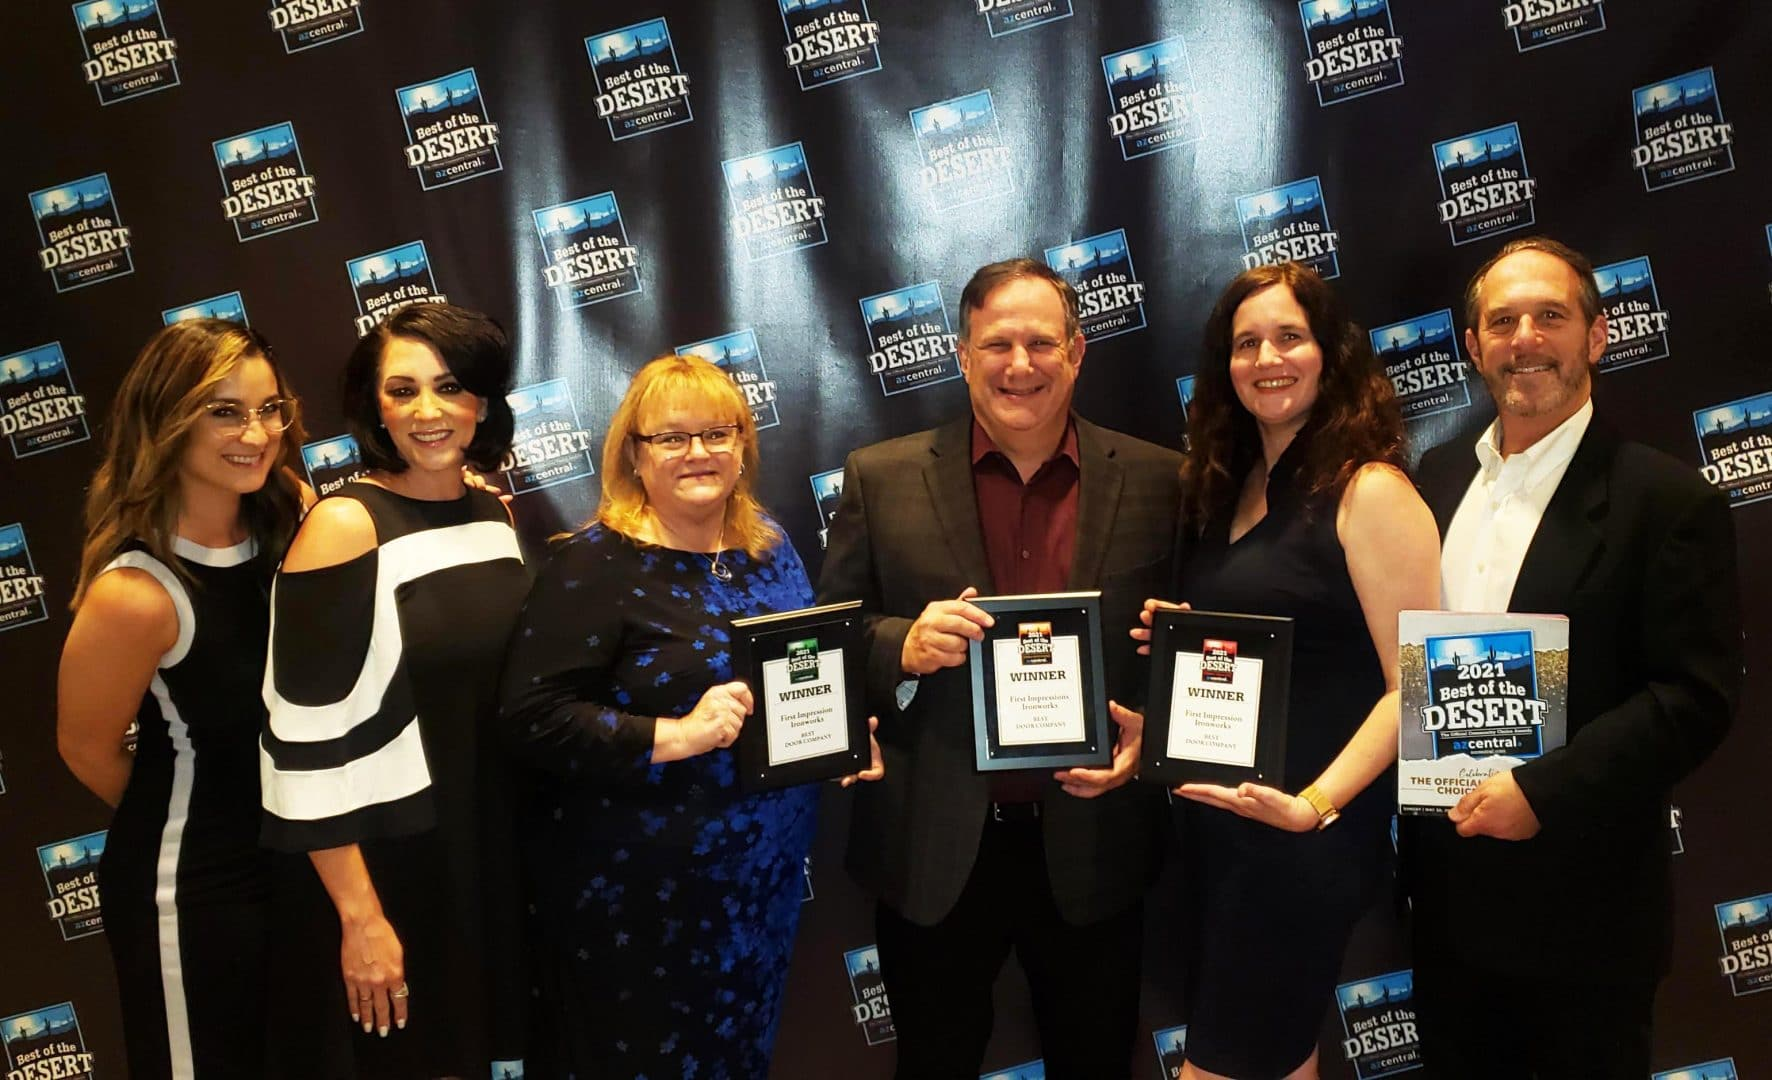 First Impression Ironworks Wins Best of the Desert.